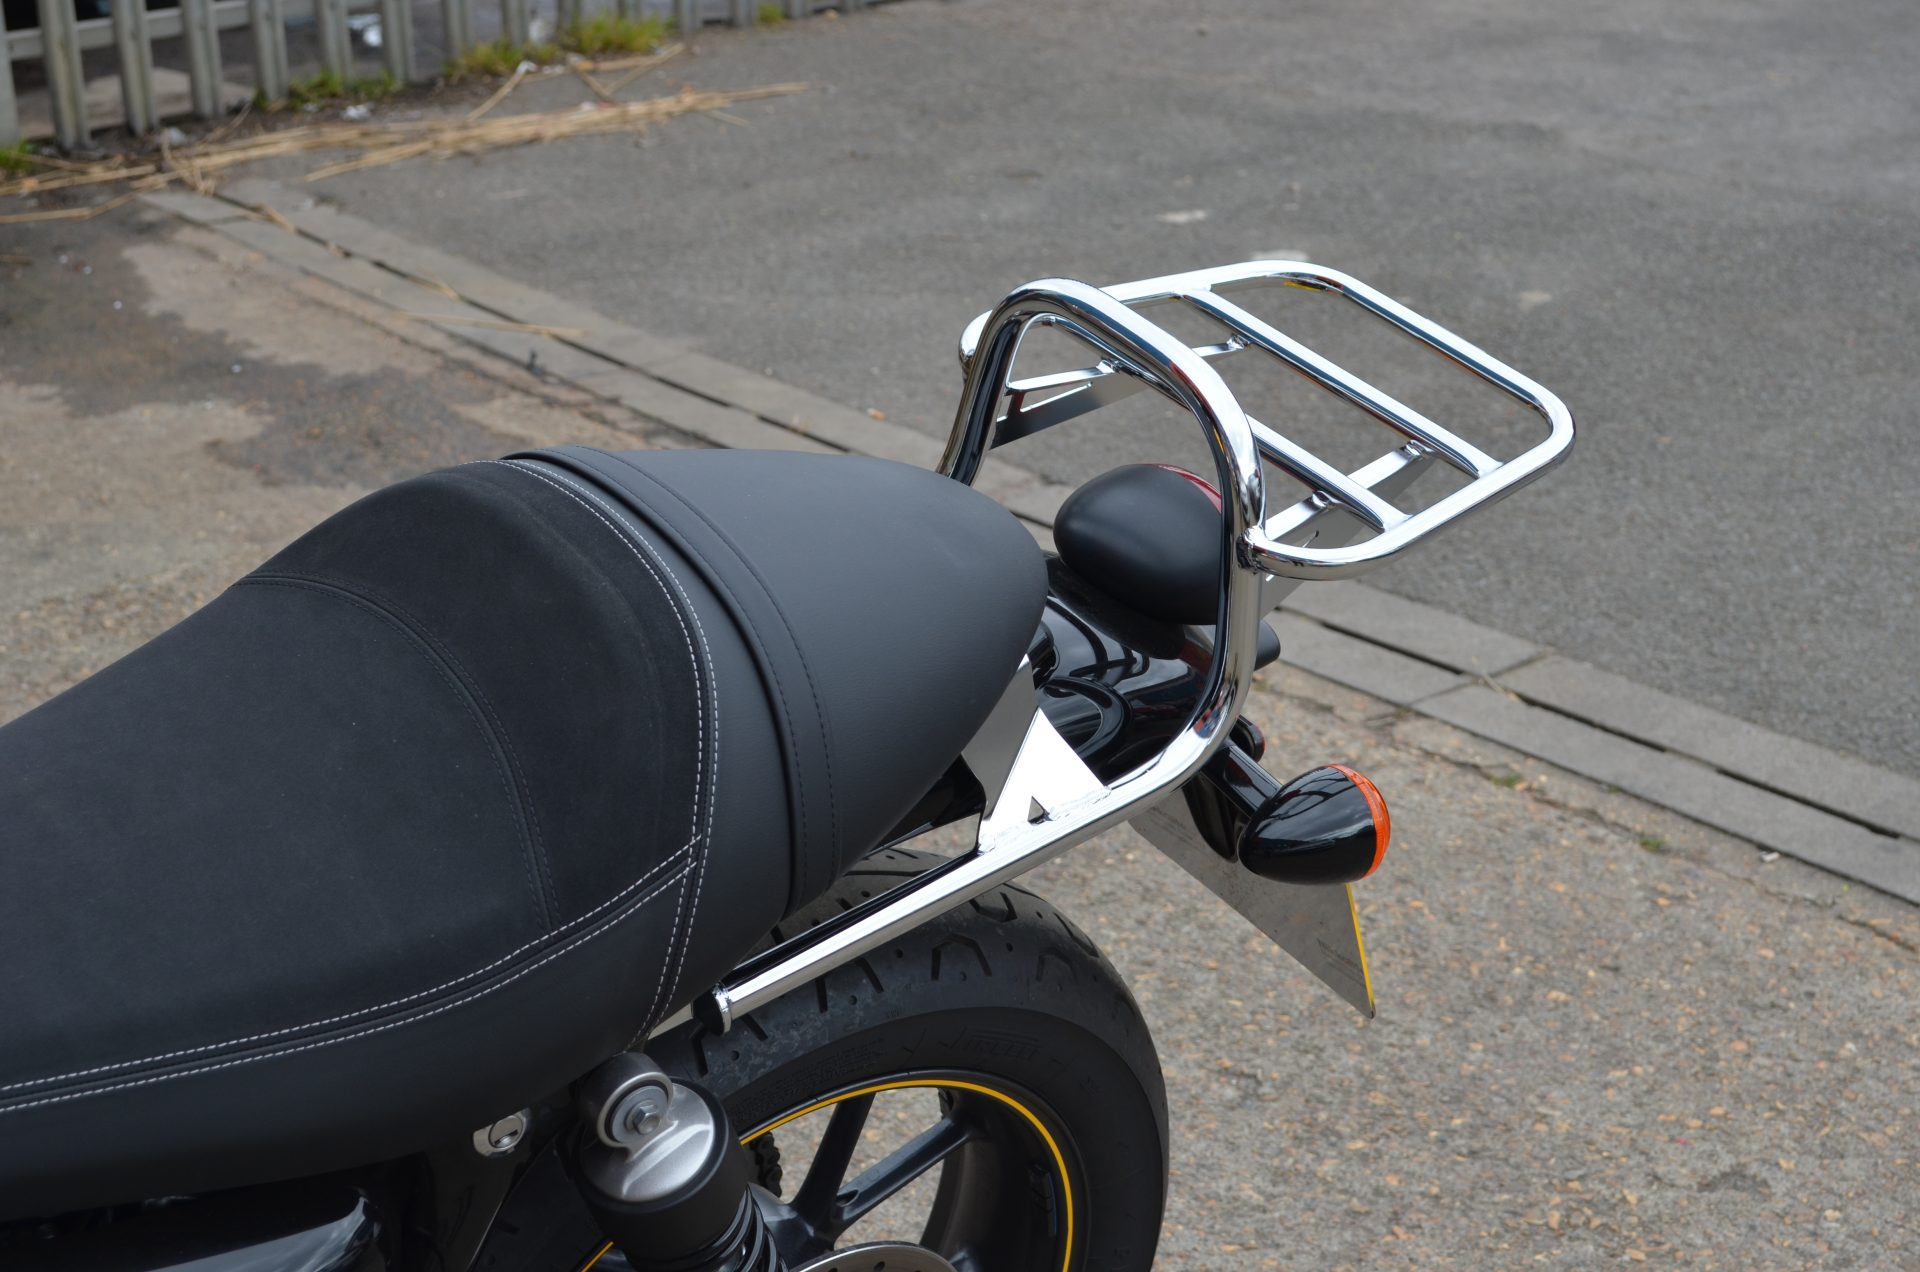 Triumph Bonneville T120/Street Twin/Street Cup/Bonneville T100 (WC) (2016-)Luggage Carrier/Top Box Rack In Chrome